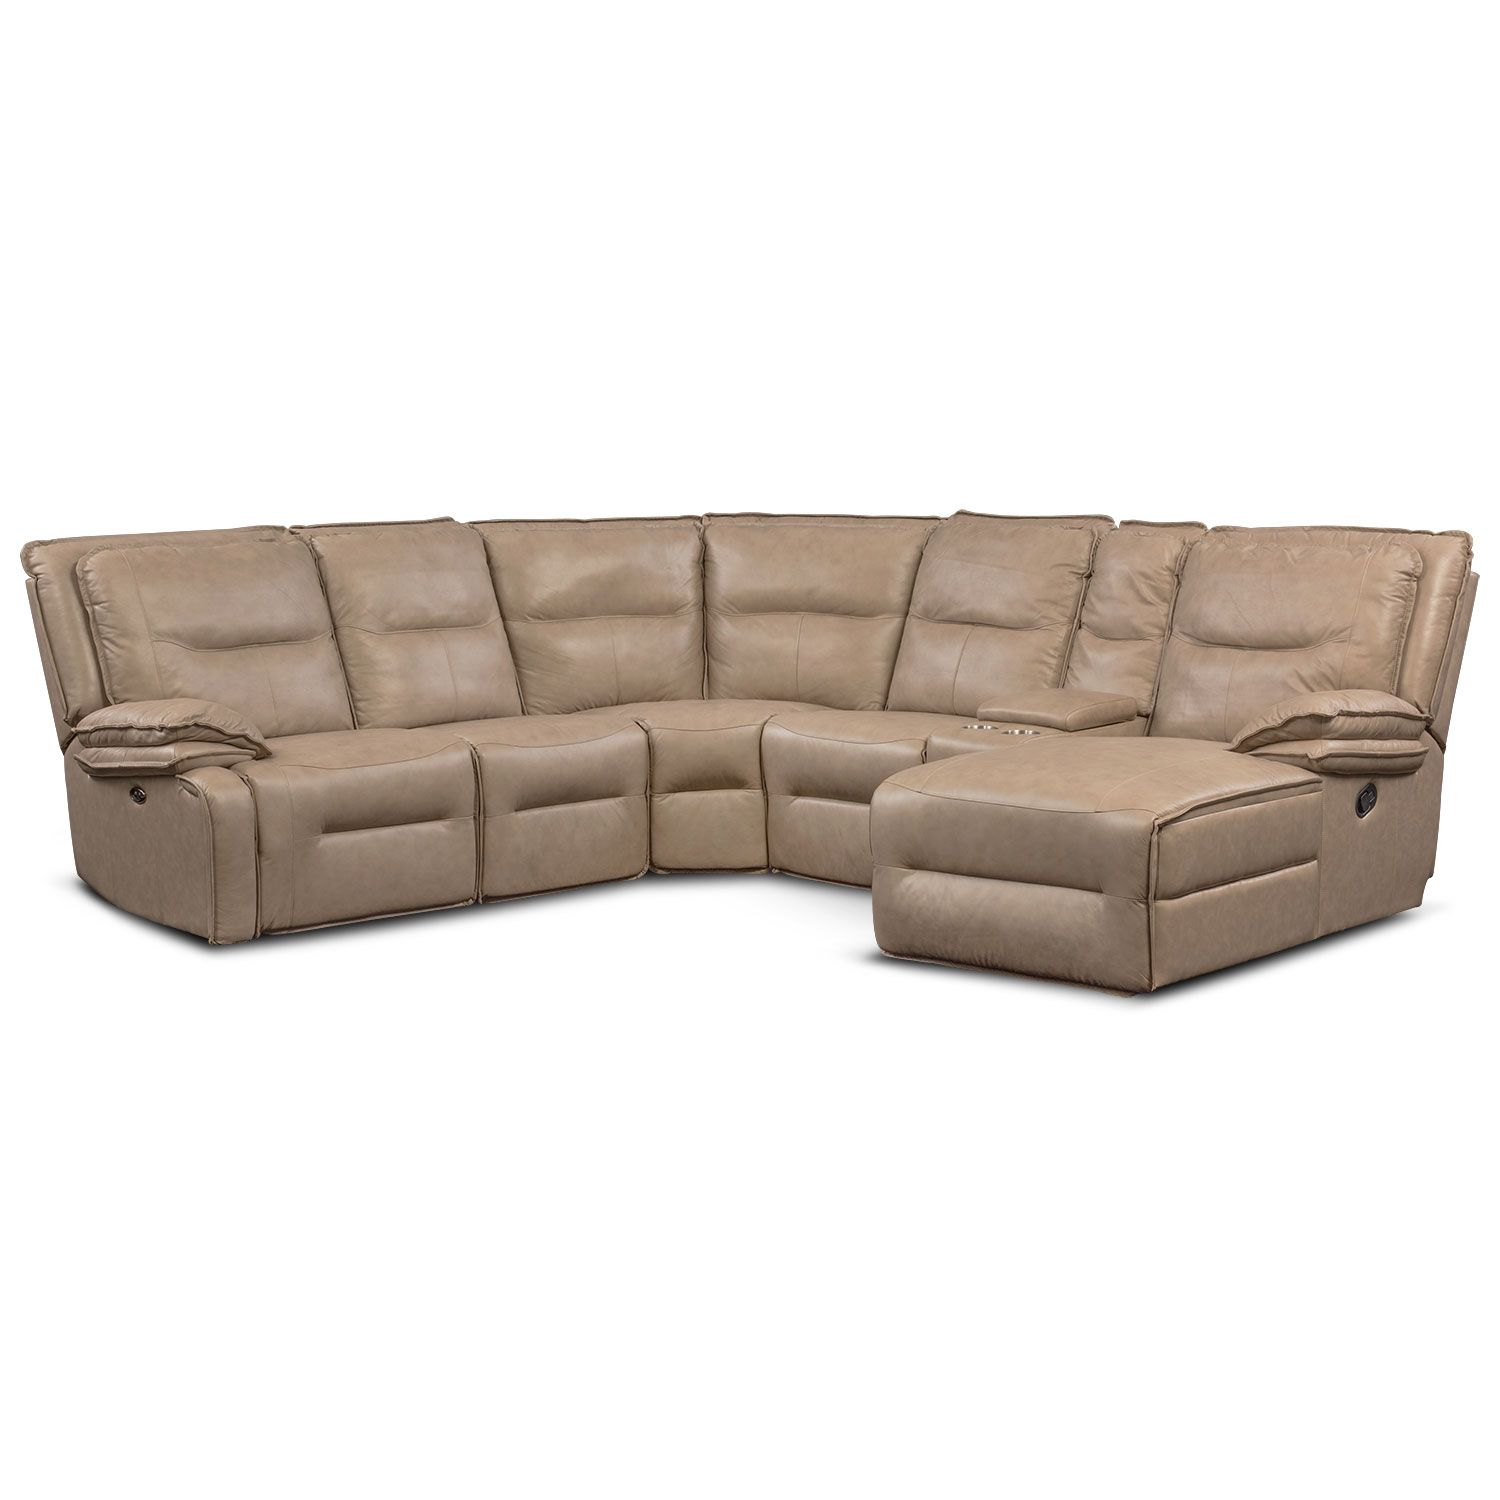 Nikki 6 Piece Power Reclining Sectional With 2 Recliners And Right